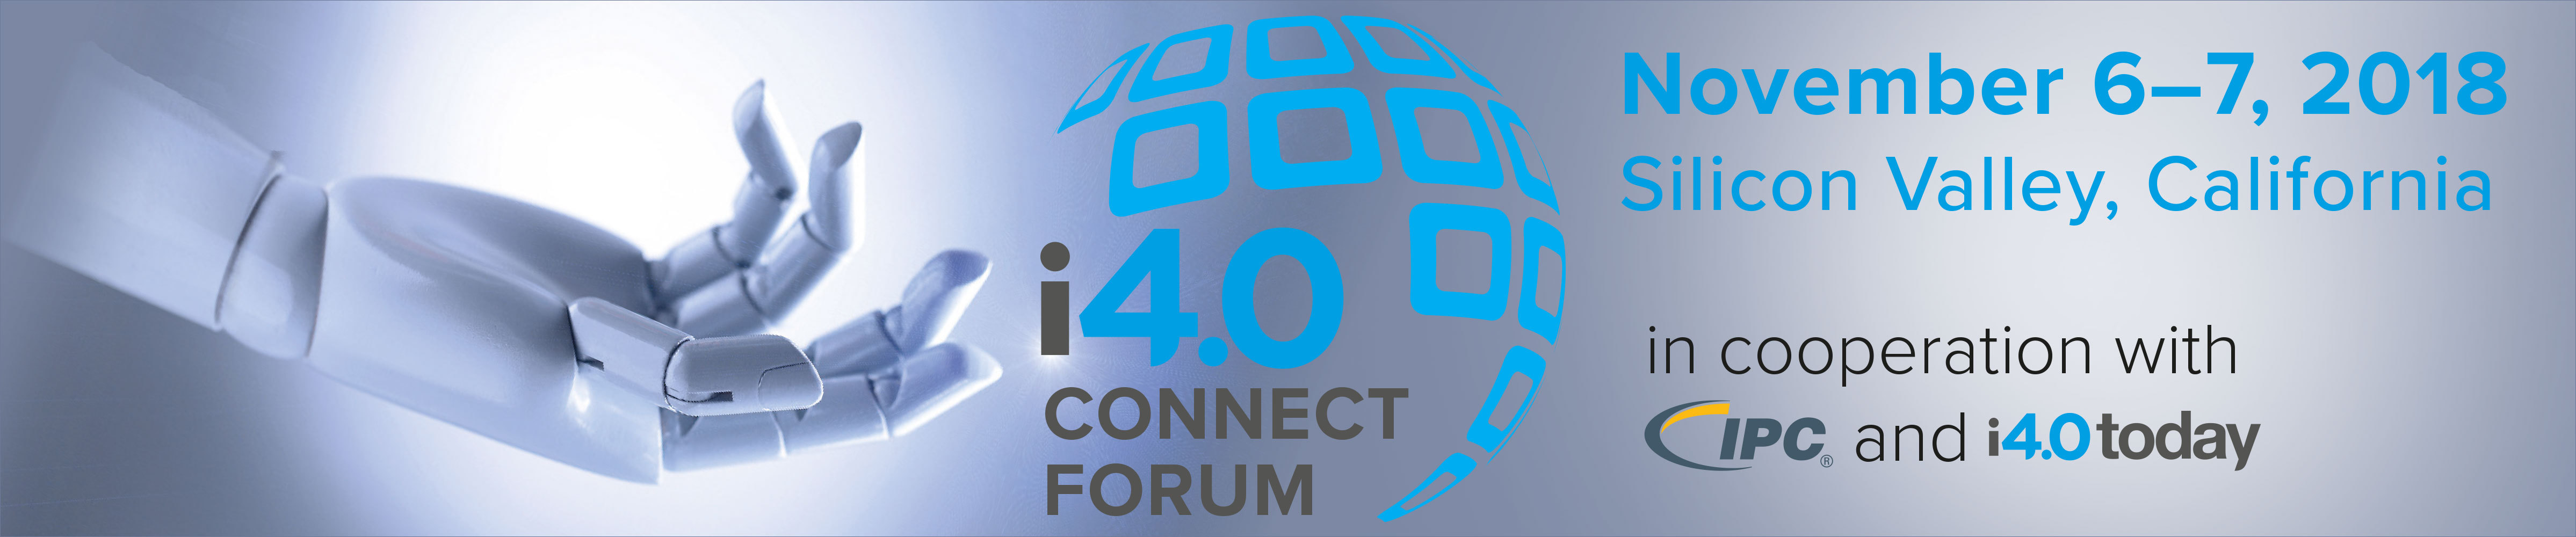 ConnectForum-cvent-header